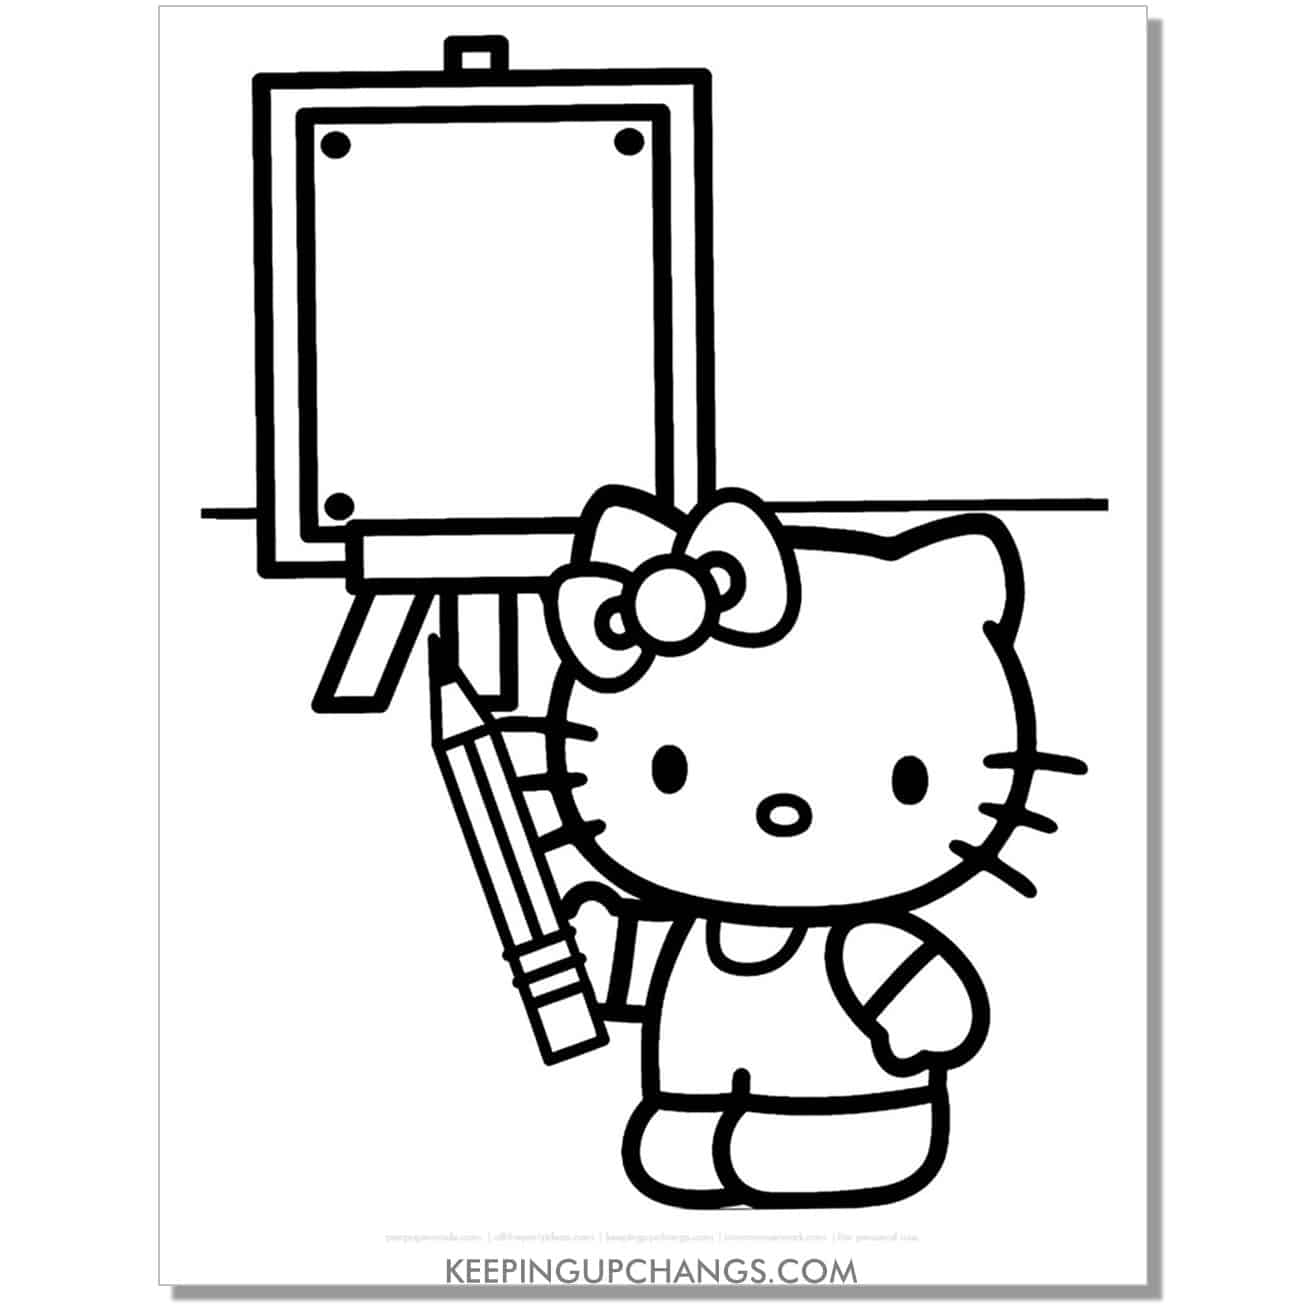 school easel and pencil hello kitty coloring page.